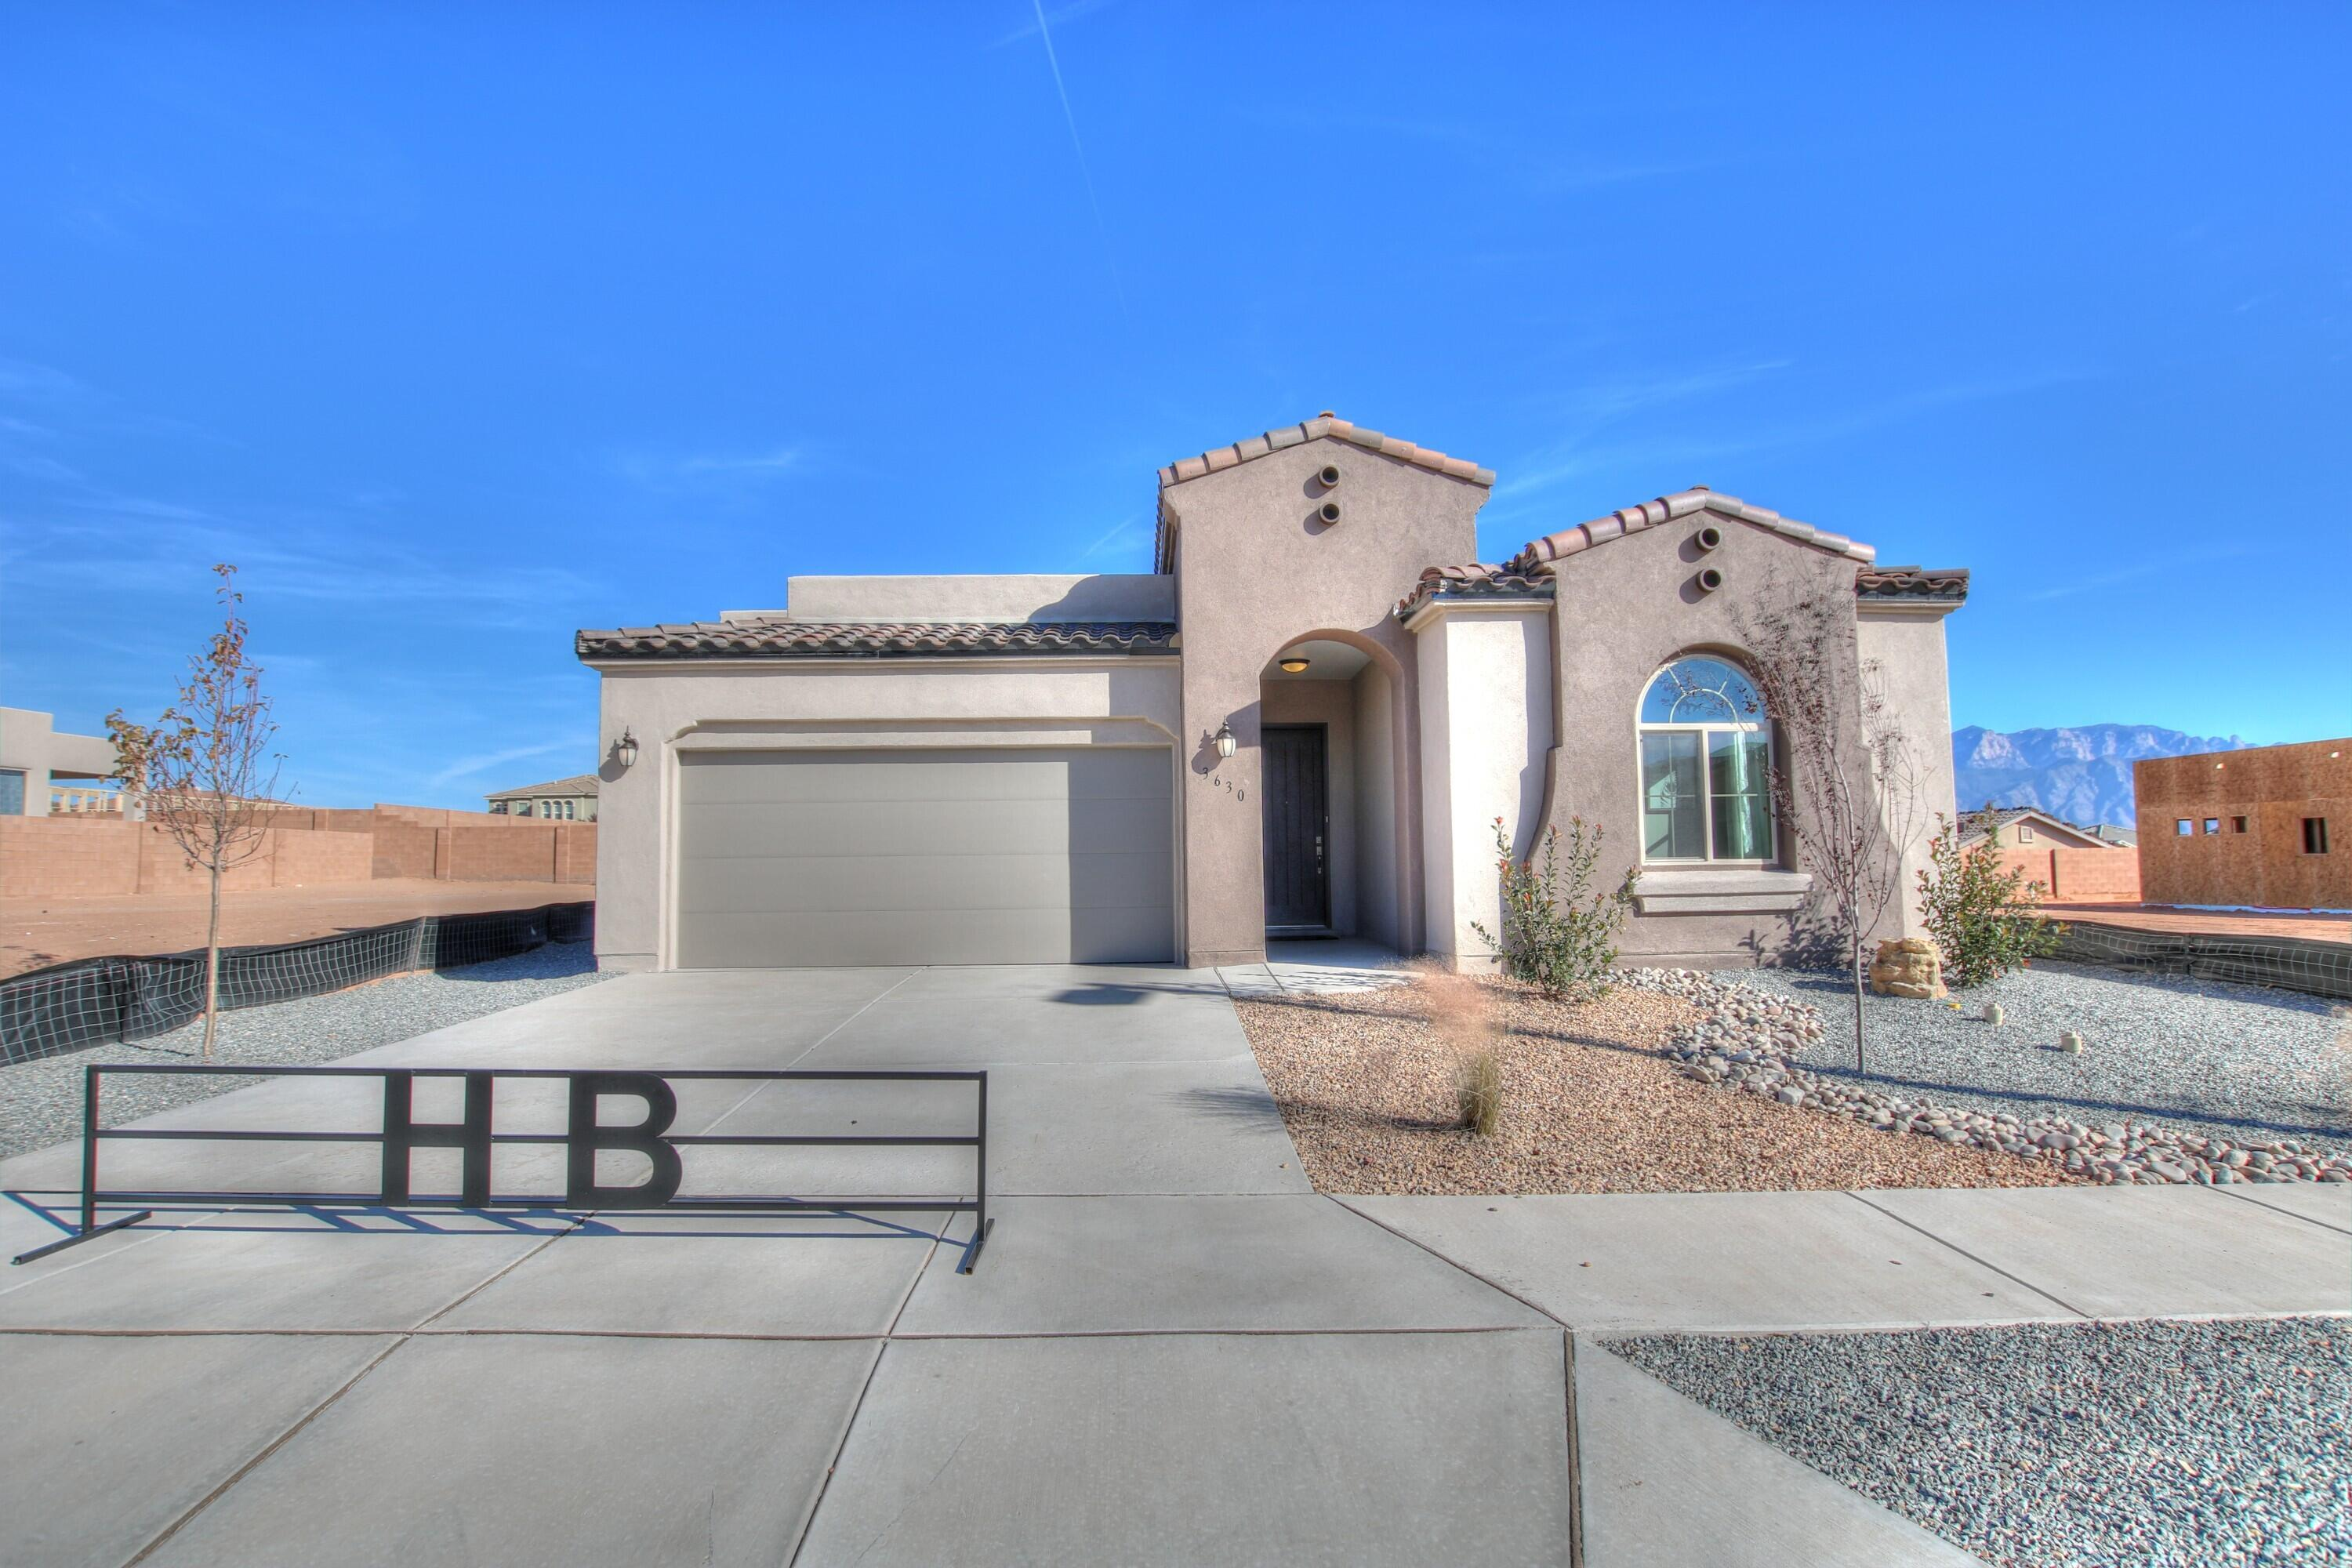 single story, 3 br 2.5 bath home, fireplace, gourmet kitchen, 8' doors, barn door, open great room, tile in all wet area, and great room (photos are not of actual home but represent the floor plan)Estimated completion 1/1/2022